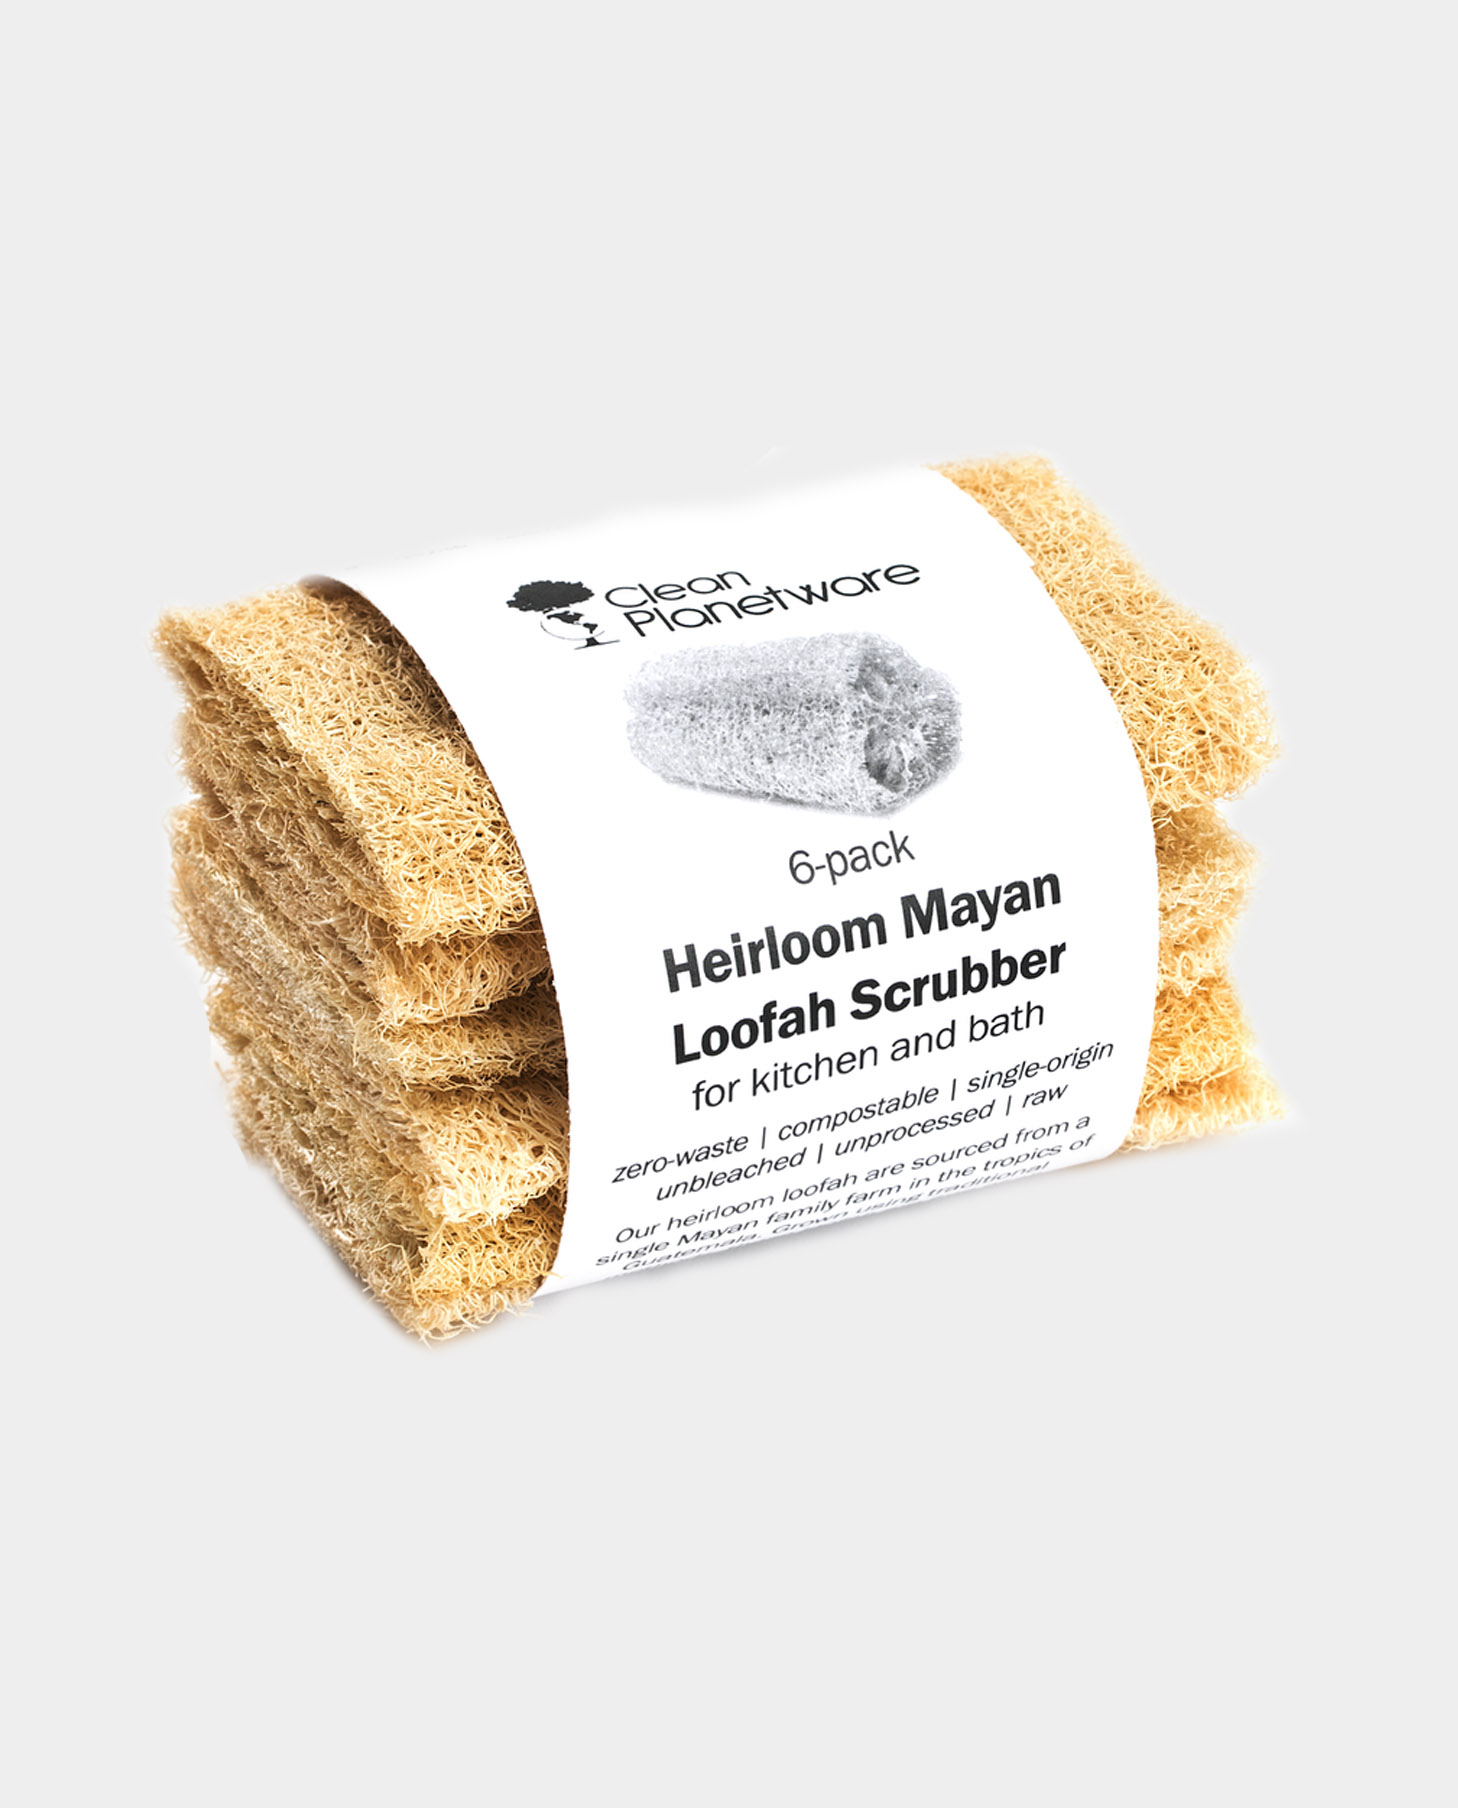 Heirloom Mayan Loofah Scrubber